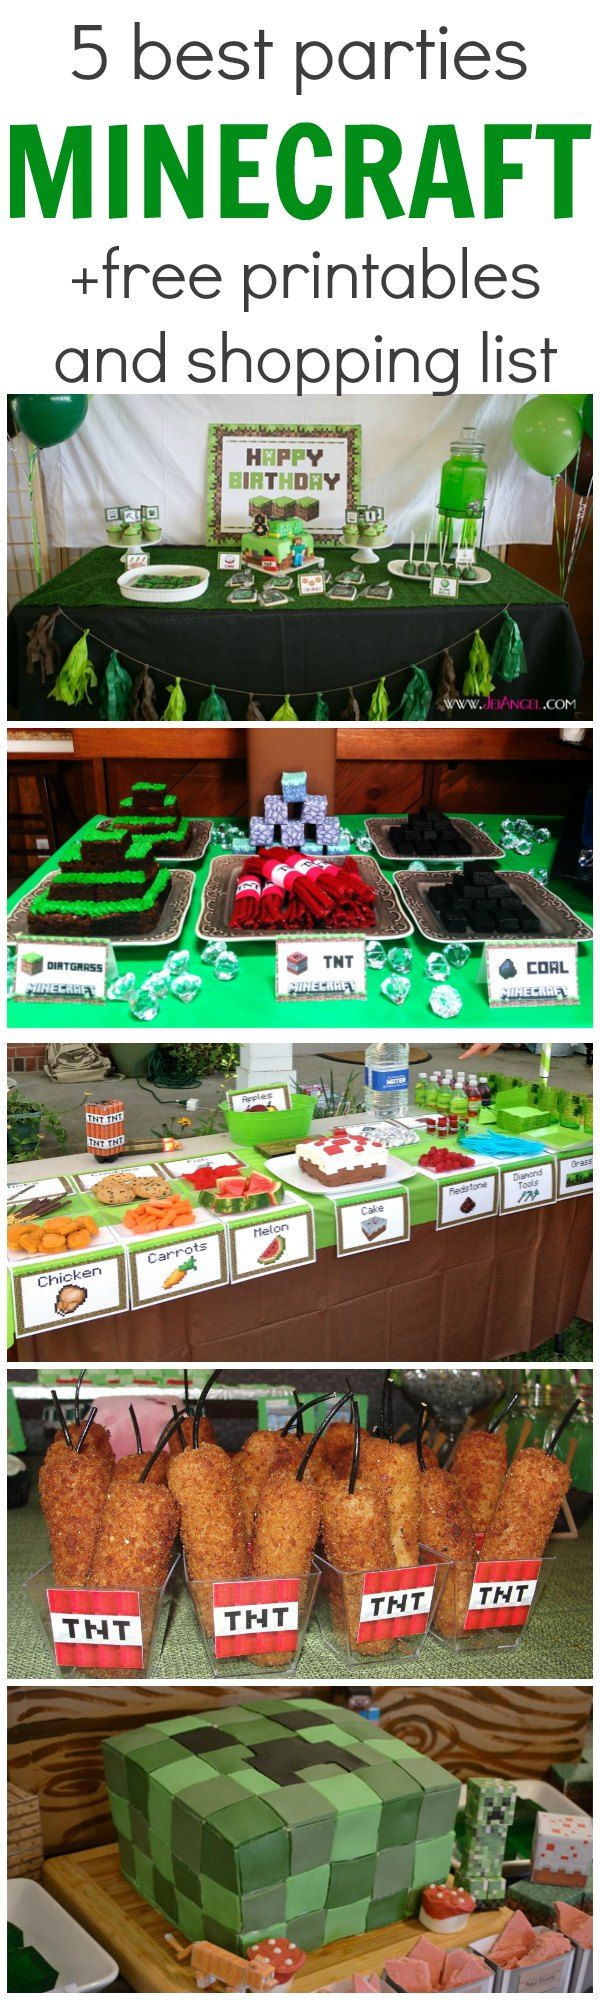 5 Best Minecraft Parties + free printables and a shopping list!